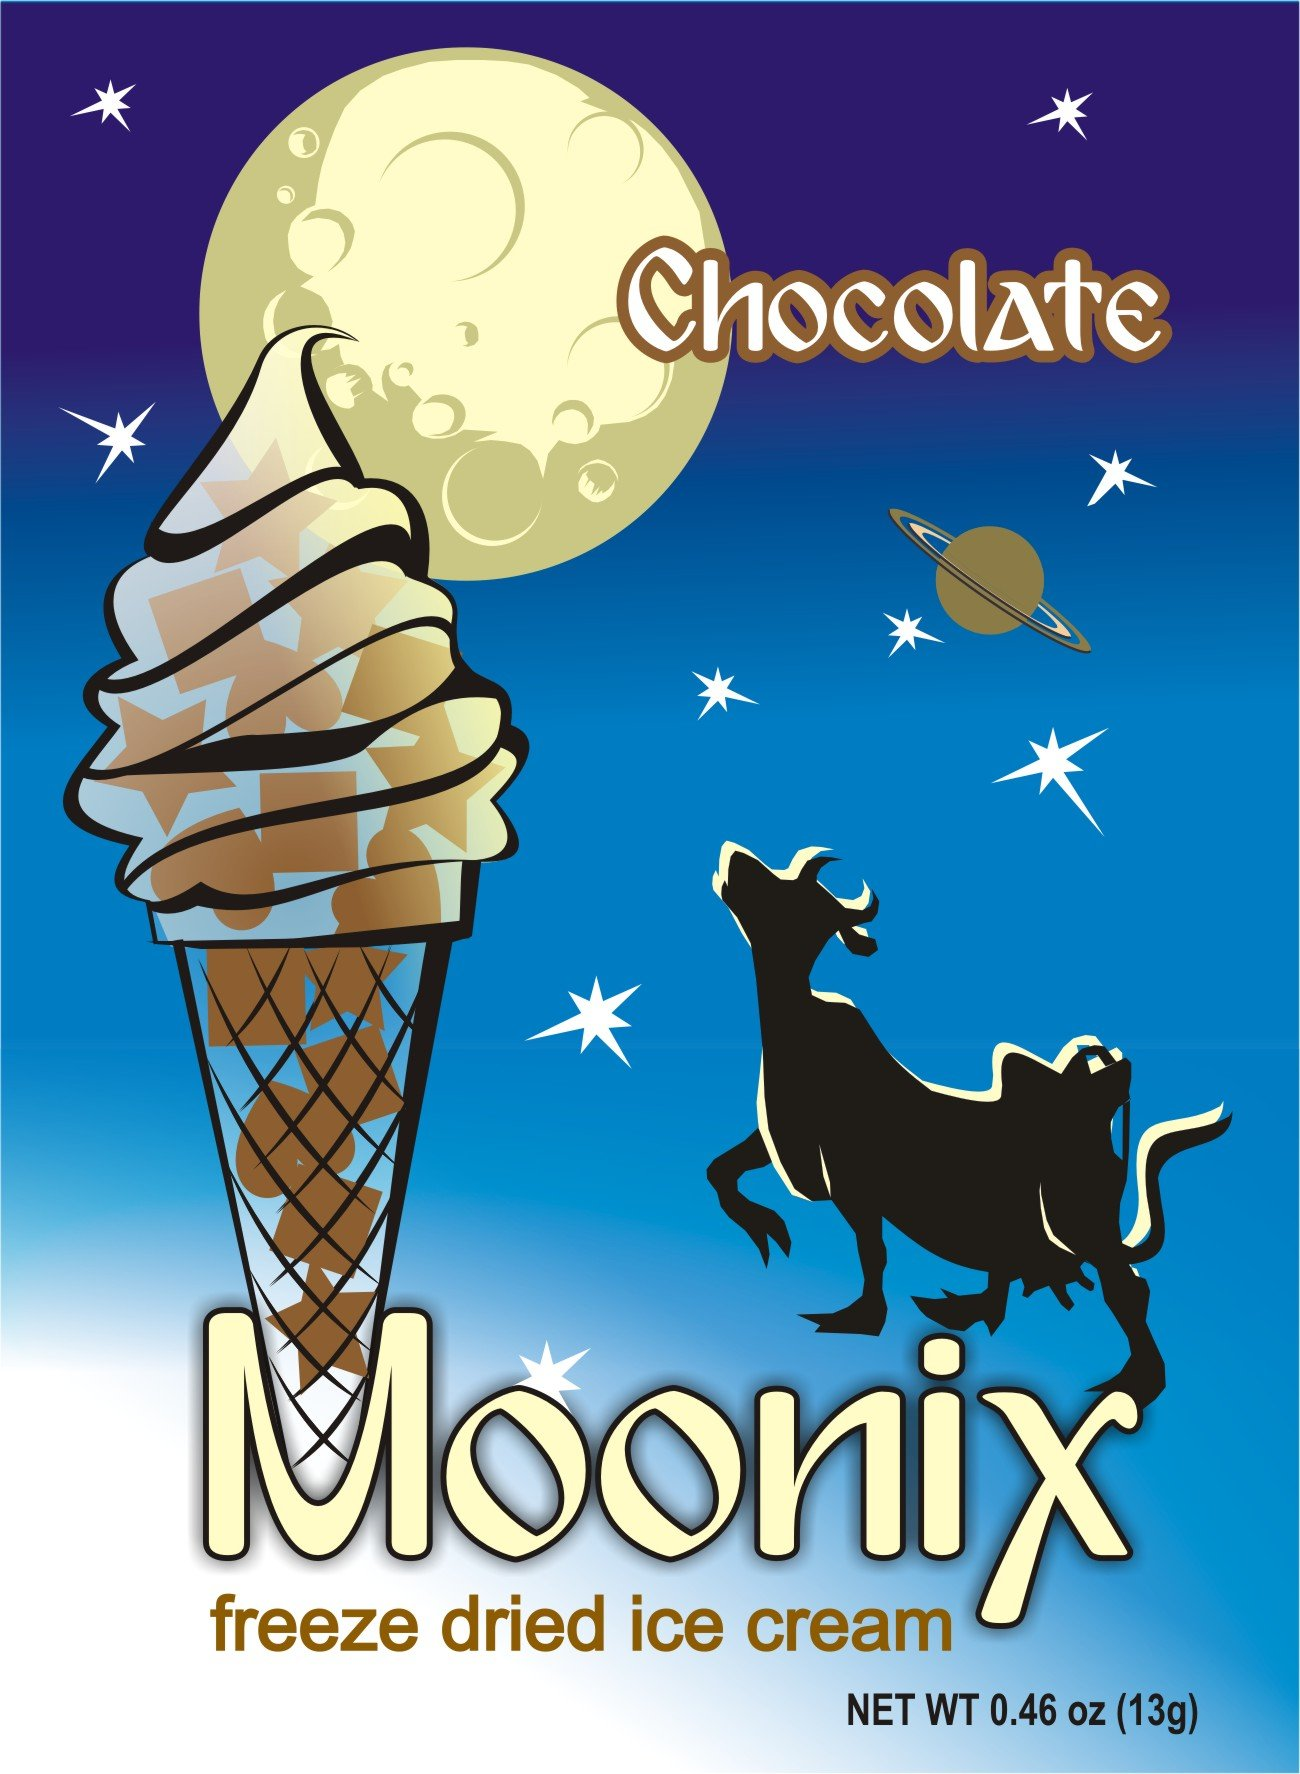 Moonix Freeze Dried Ice Cream (Chocolate)